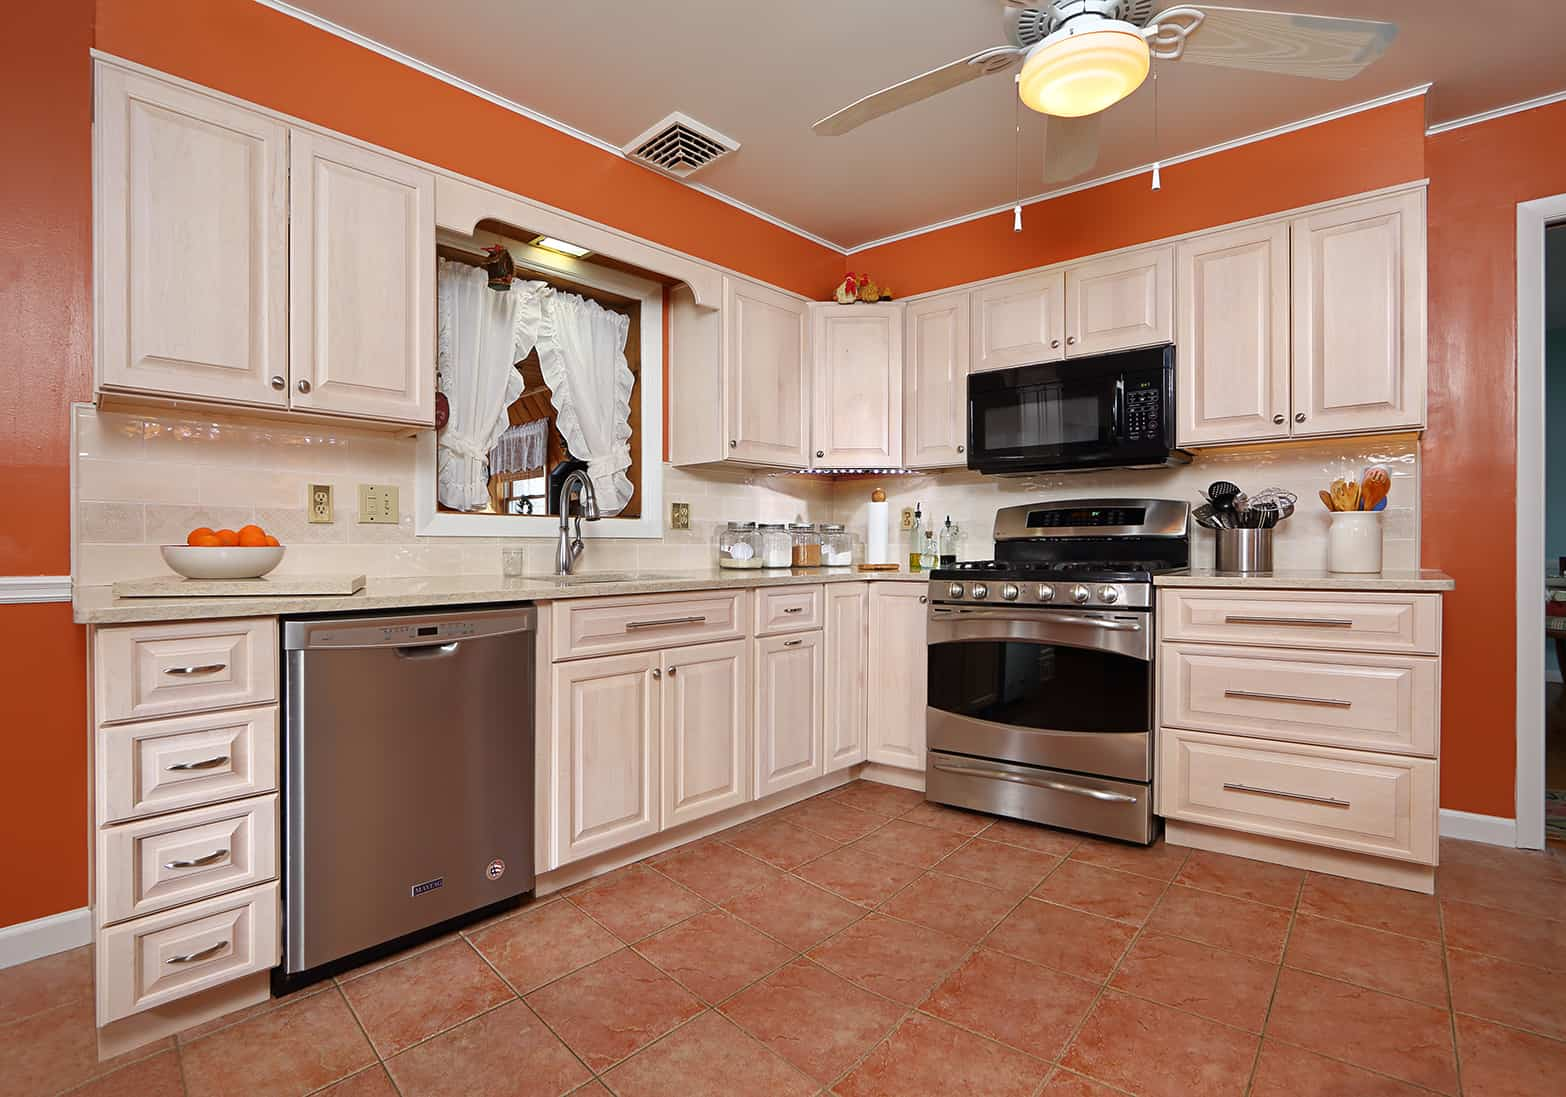 kitchen solutions best new gadgets remodeling gallery albany ny contractor saratoga goliber 2017 02 final low res